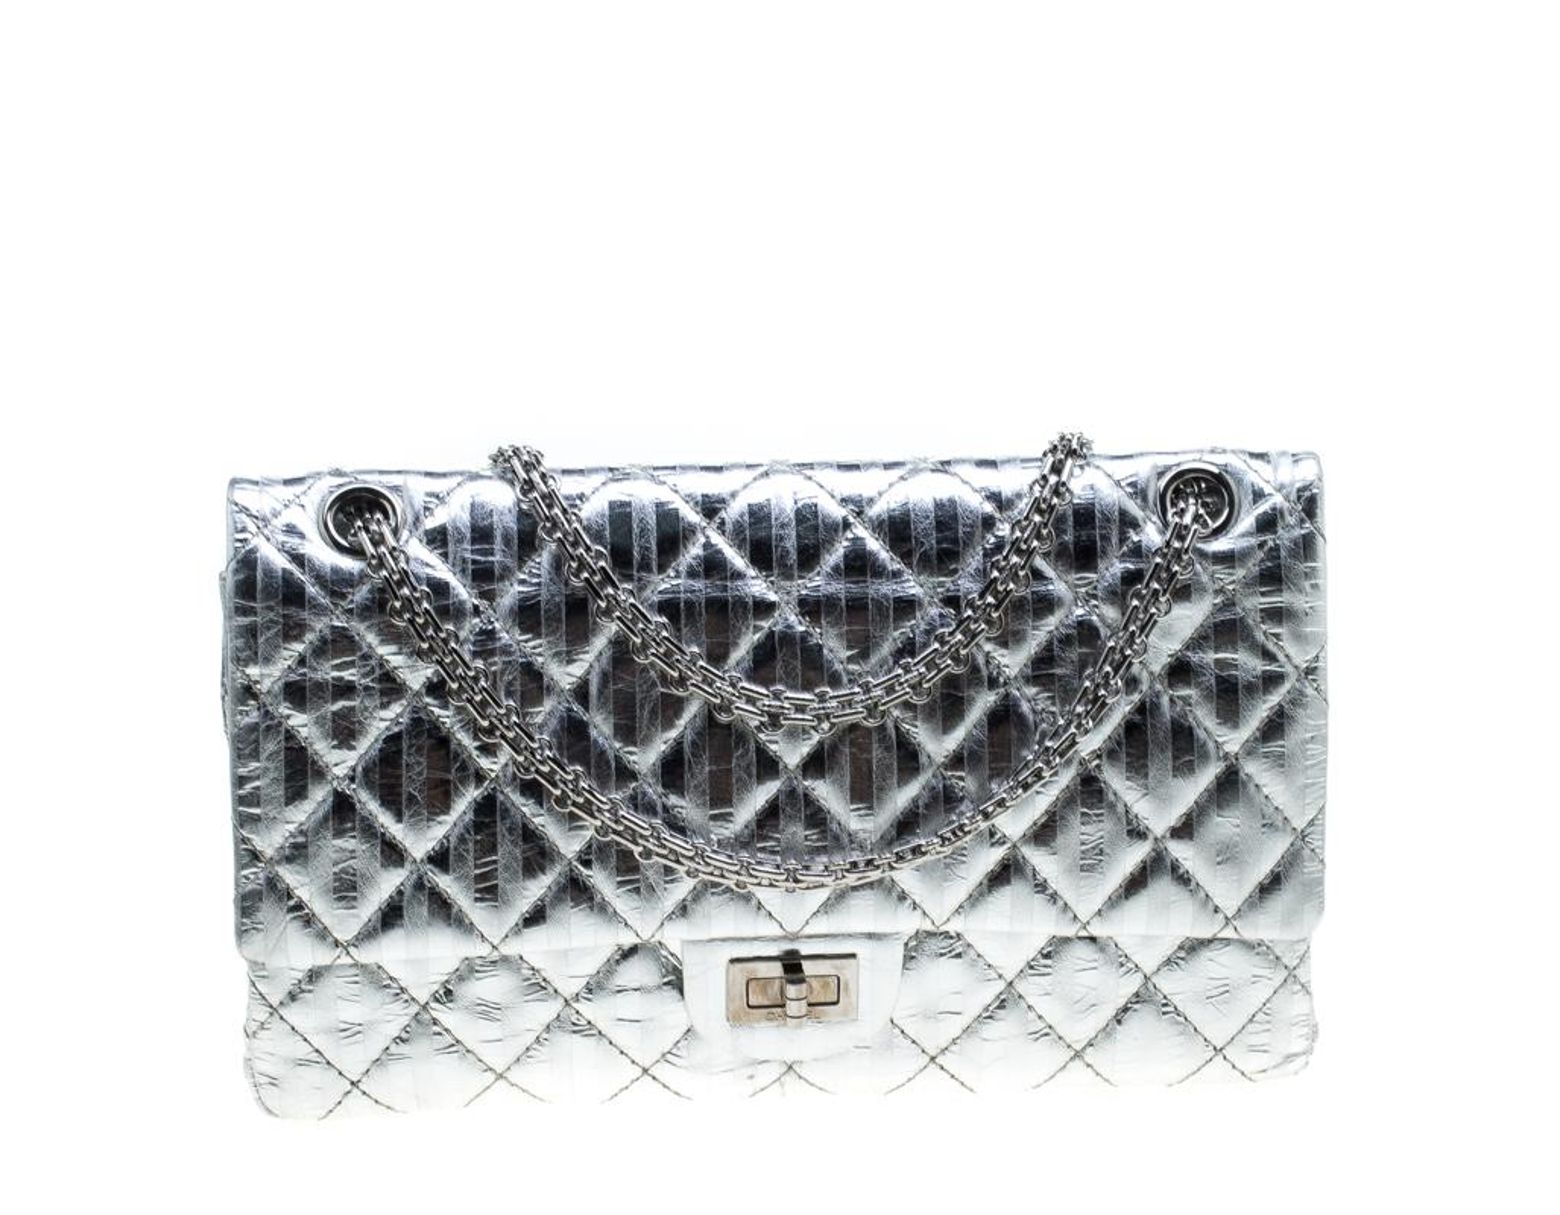 7d511f4b2ac2 Chanel Silver Quilted Leather Striped Reissue 2.55 Classic 226 Flap Bag in  Metallic - Lyst